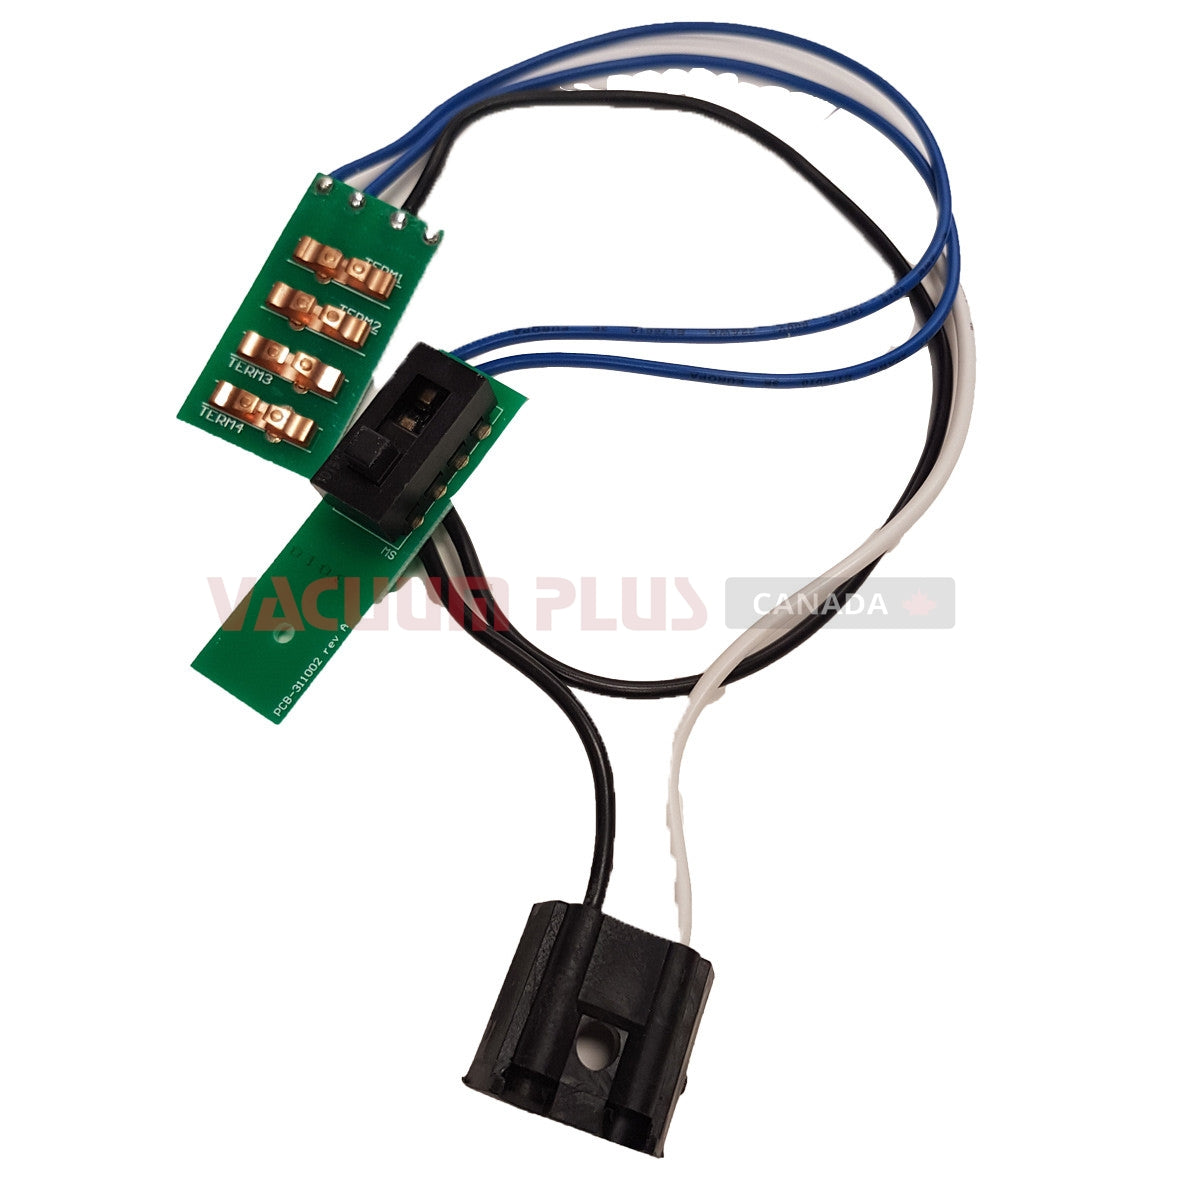 BEAM Electrolux Wire Harness TC 170522 Vacuum Plus Canada?v=1478109993 buy electrolux from vacuum plus canada vacuum plus canada  at couponss.co